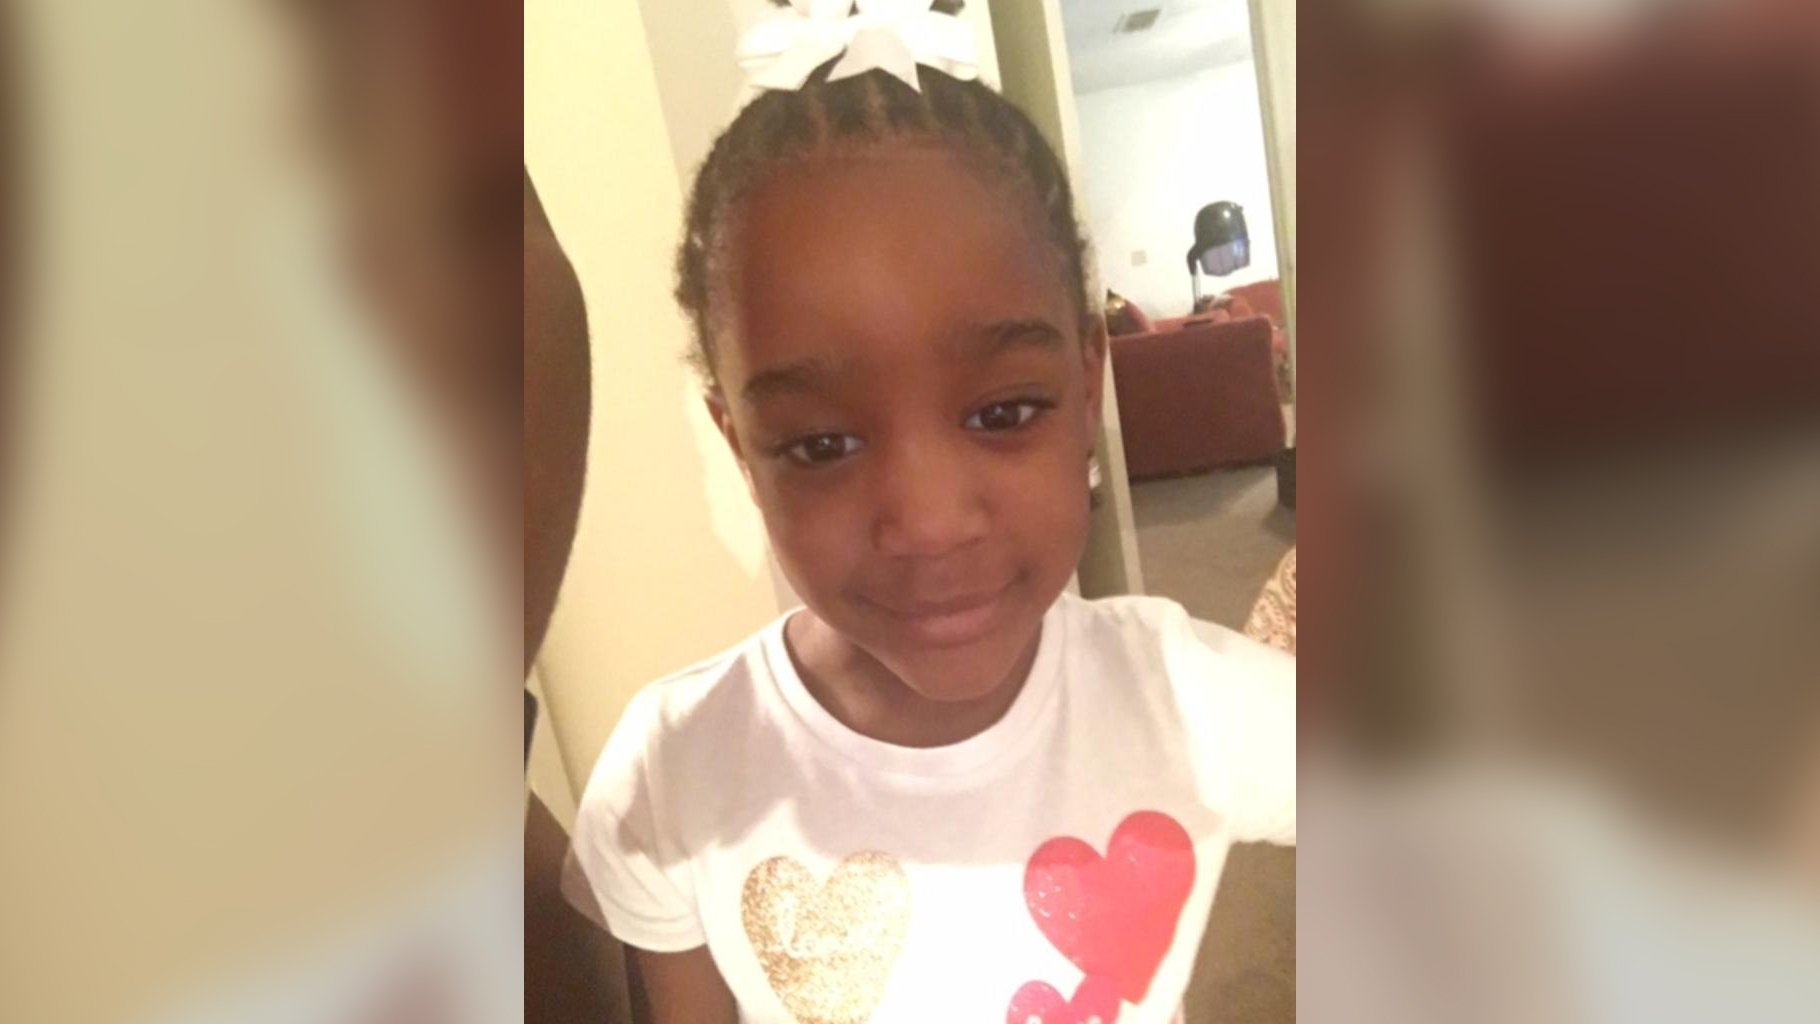 The search for a missing 5-year-old Florida girl expands to Alabama